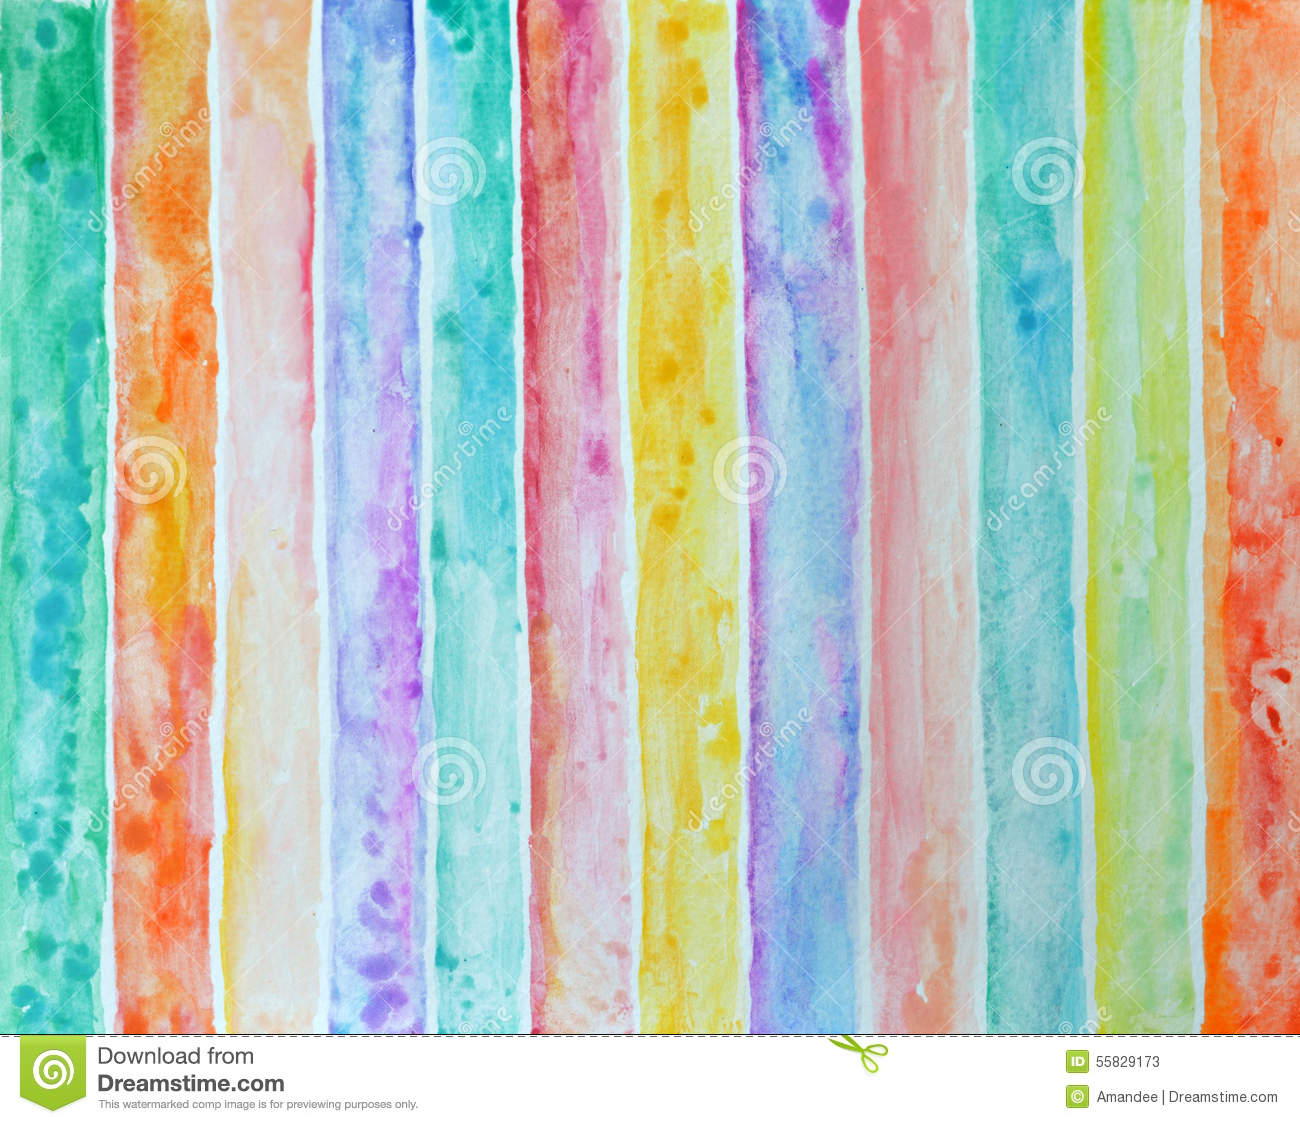 Abstract Striped Pattern Background Watercolor Painting Stock ...